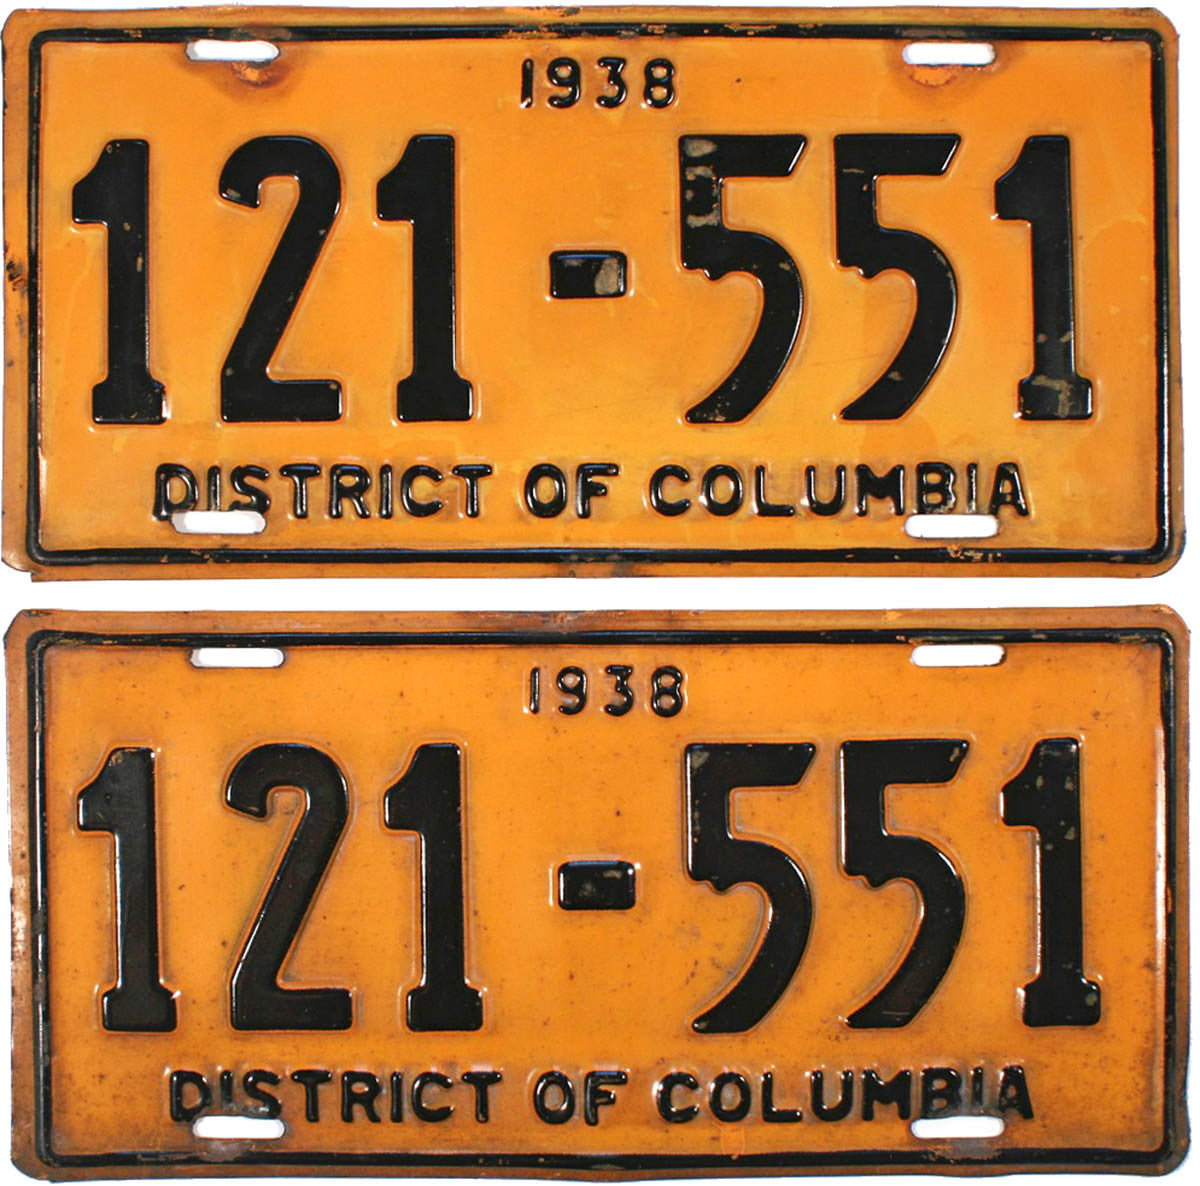 1938 District of Columbia License Plates